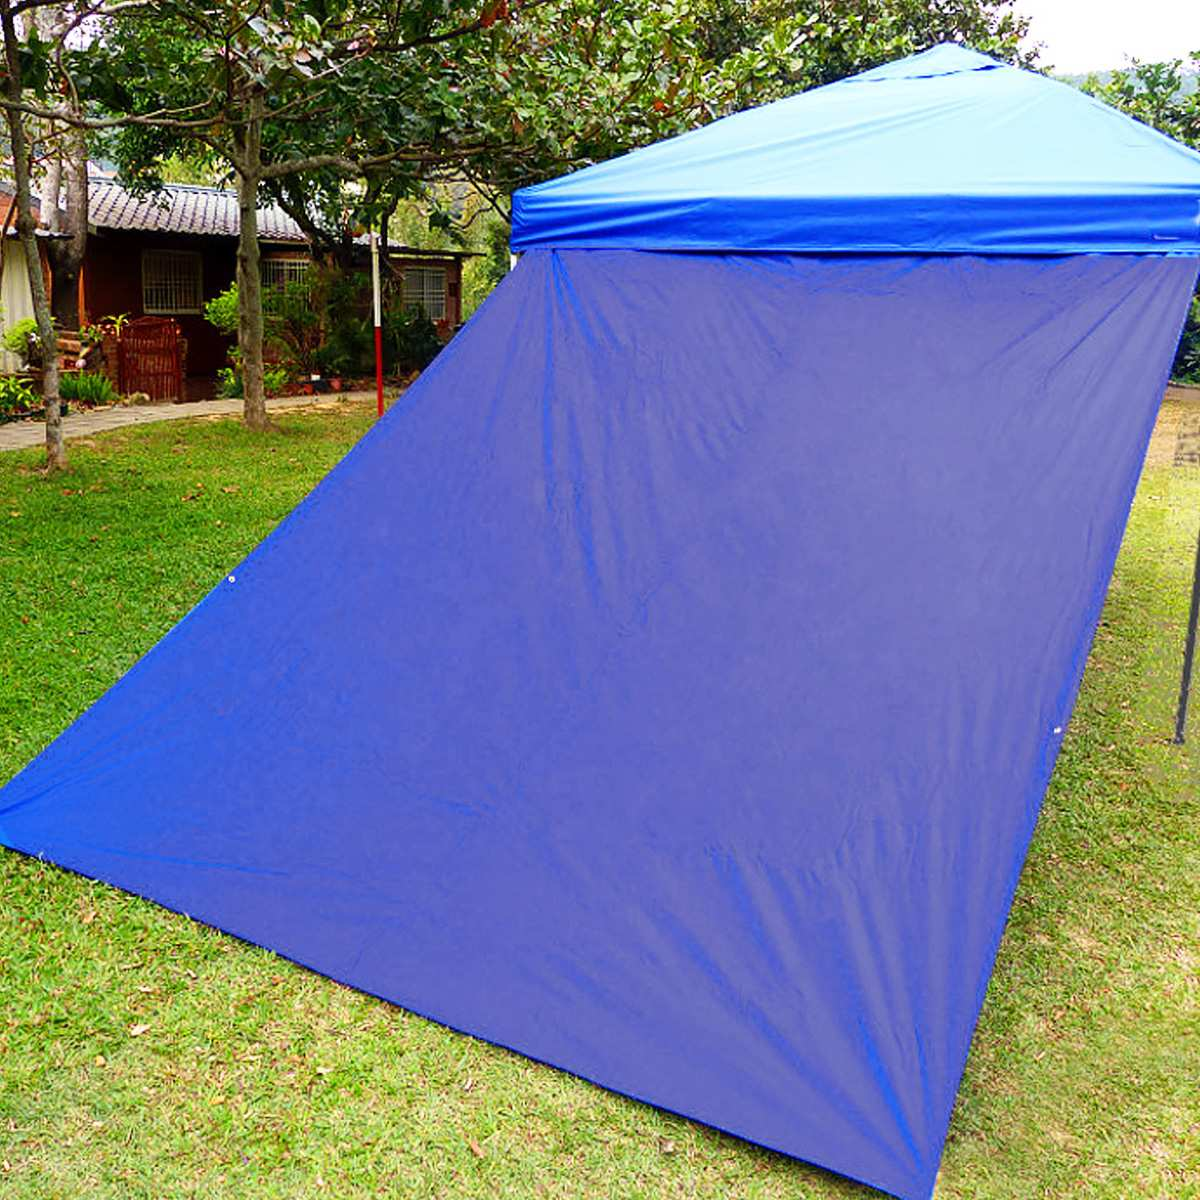 ALI shop ...  ... 33010964848 ... 4 ... Waterproof Tent Shade Beach Sun Shelter Tarp Ultralight UV Garden Awning Canopy Sunshade Outdoor Camping Hammock Rain Fly ...